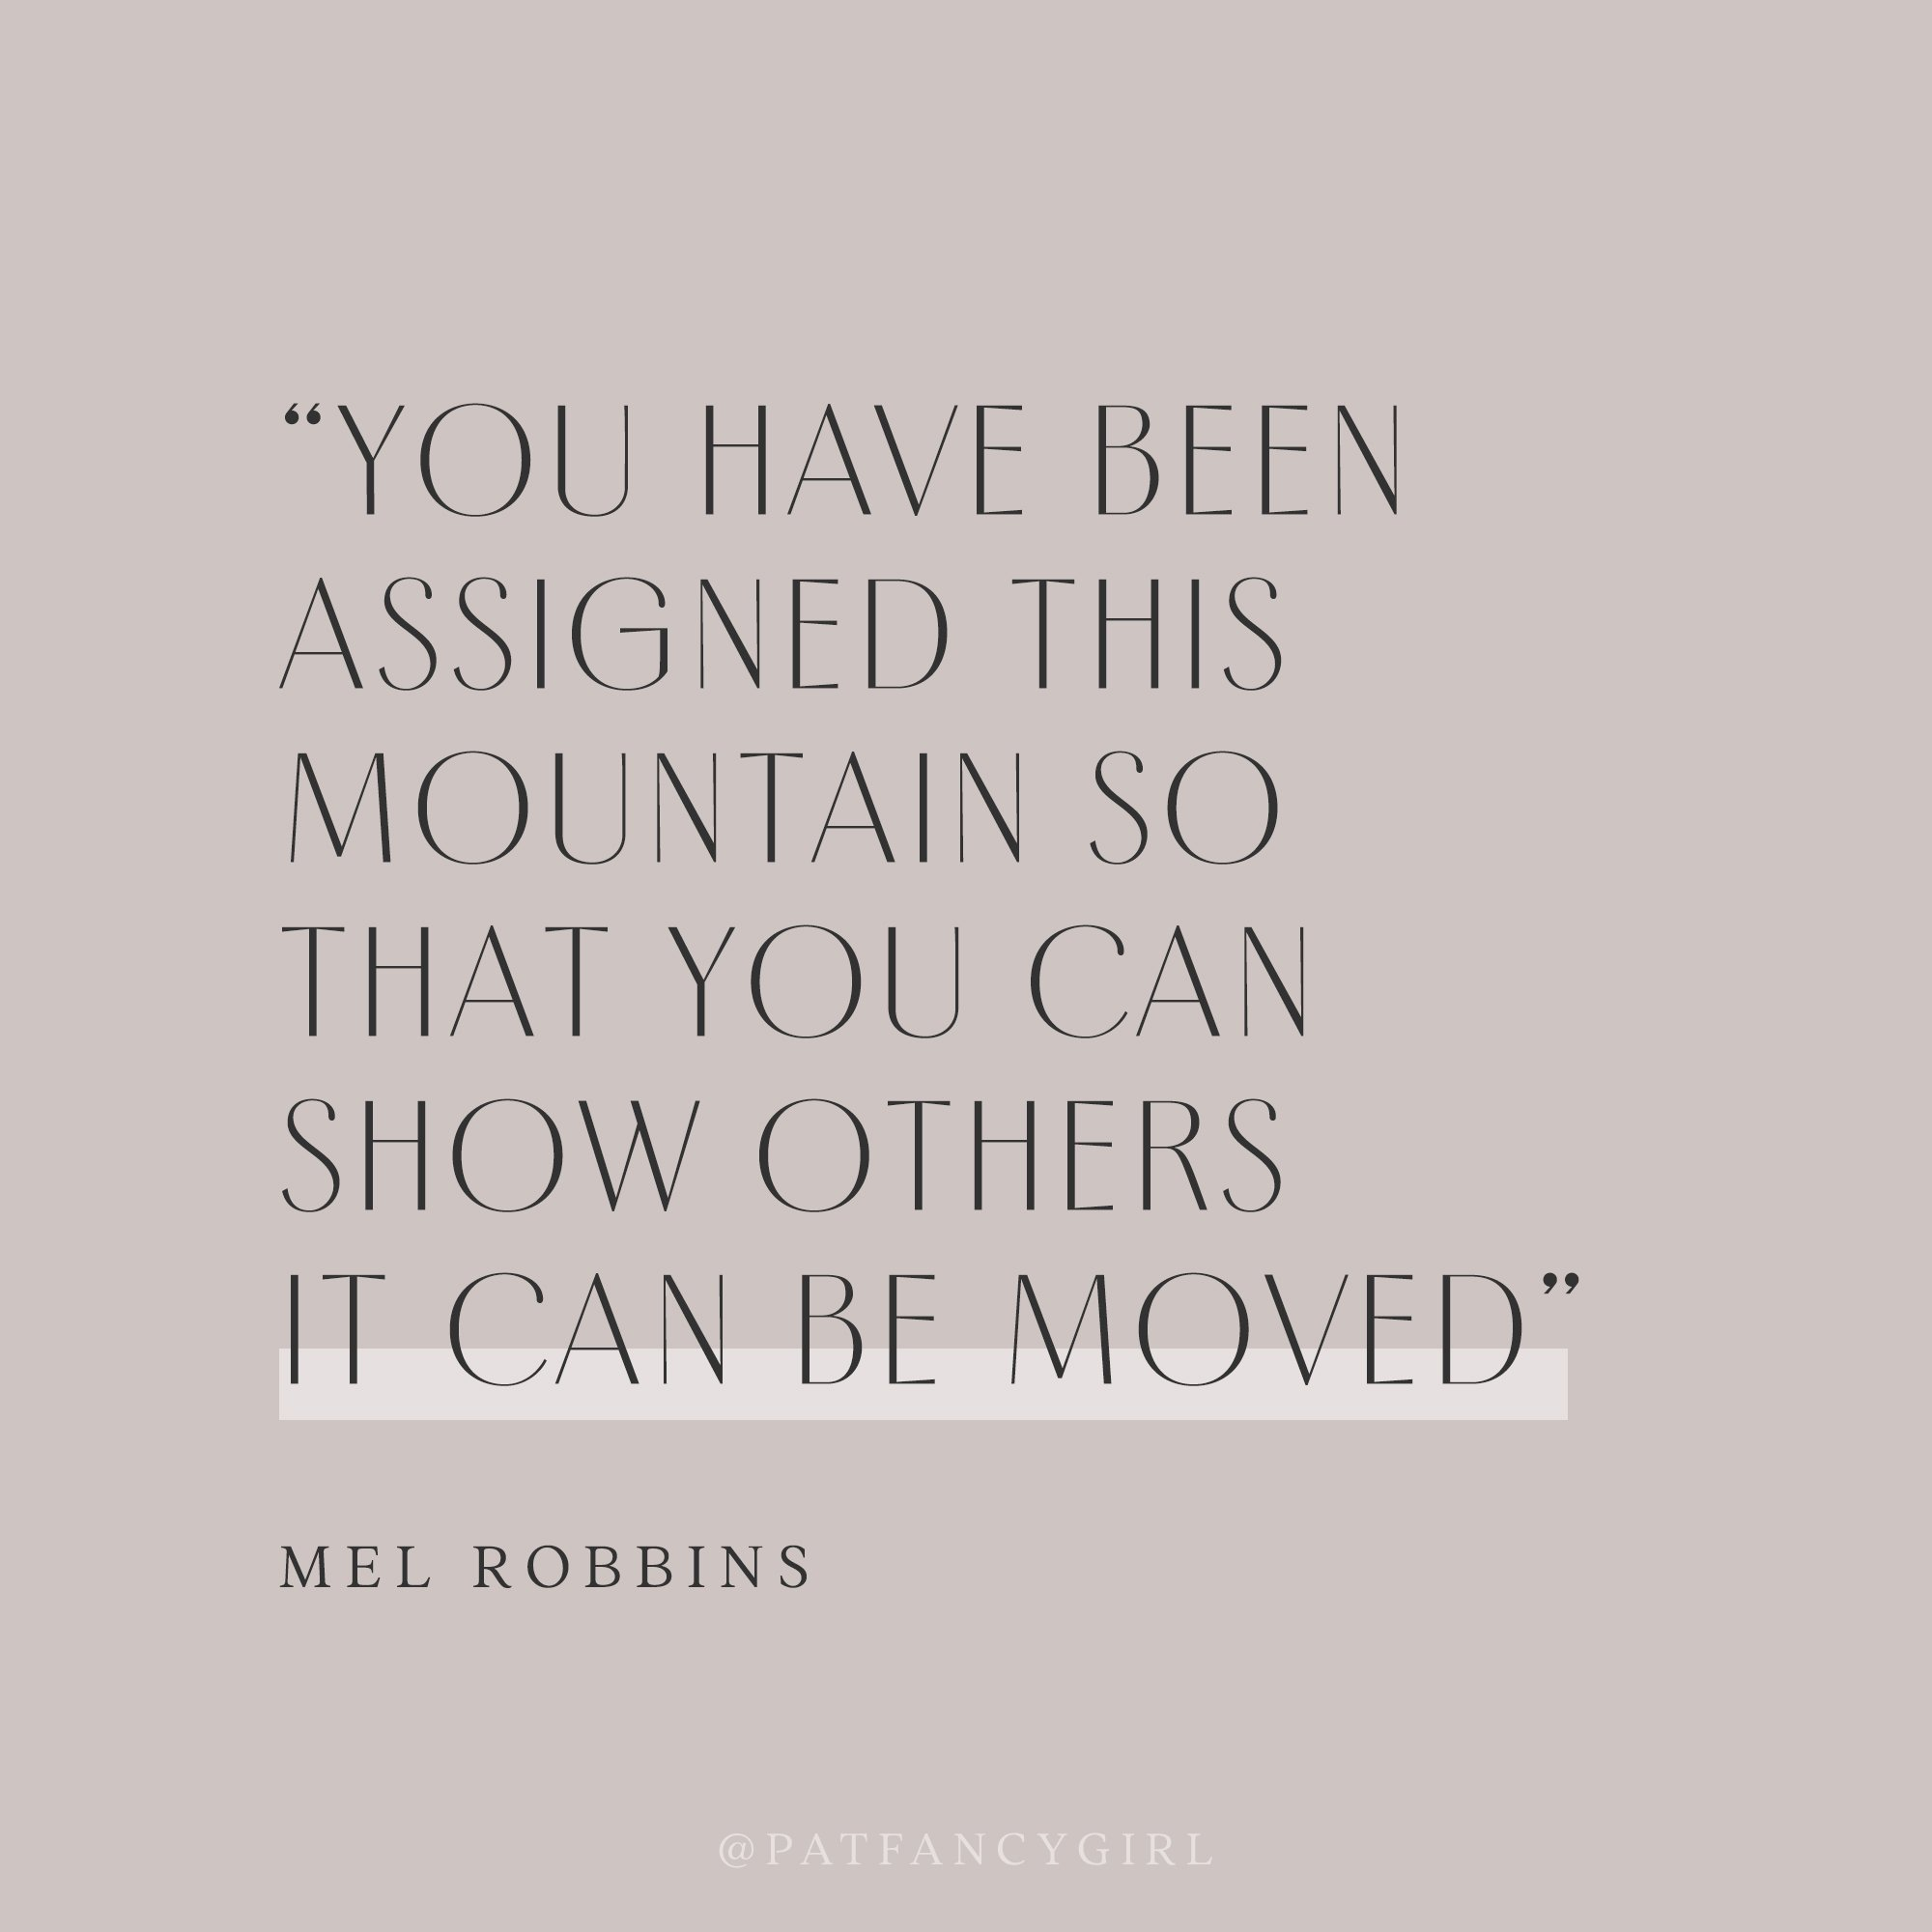 You have been assigned this mountain so that you can show others it can be moved. - Mel Robbins